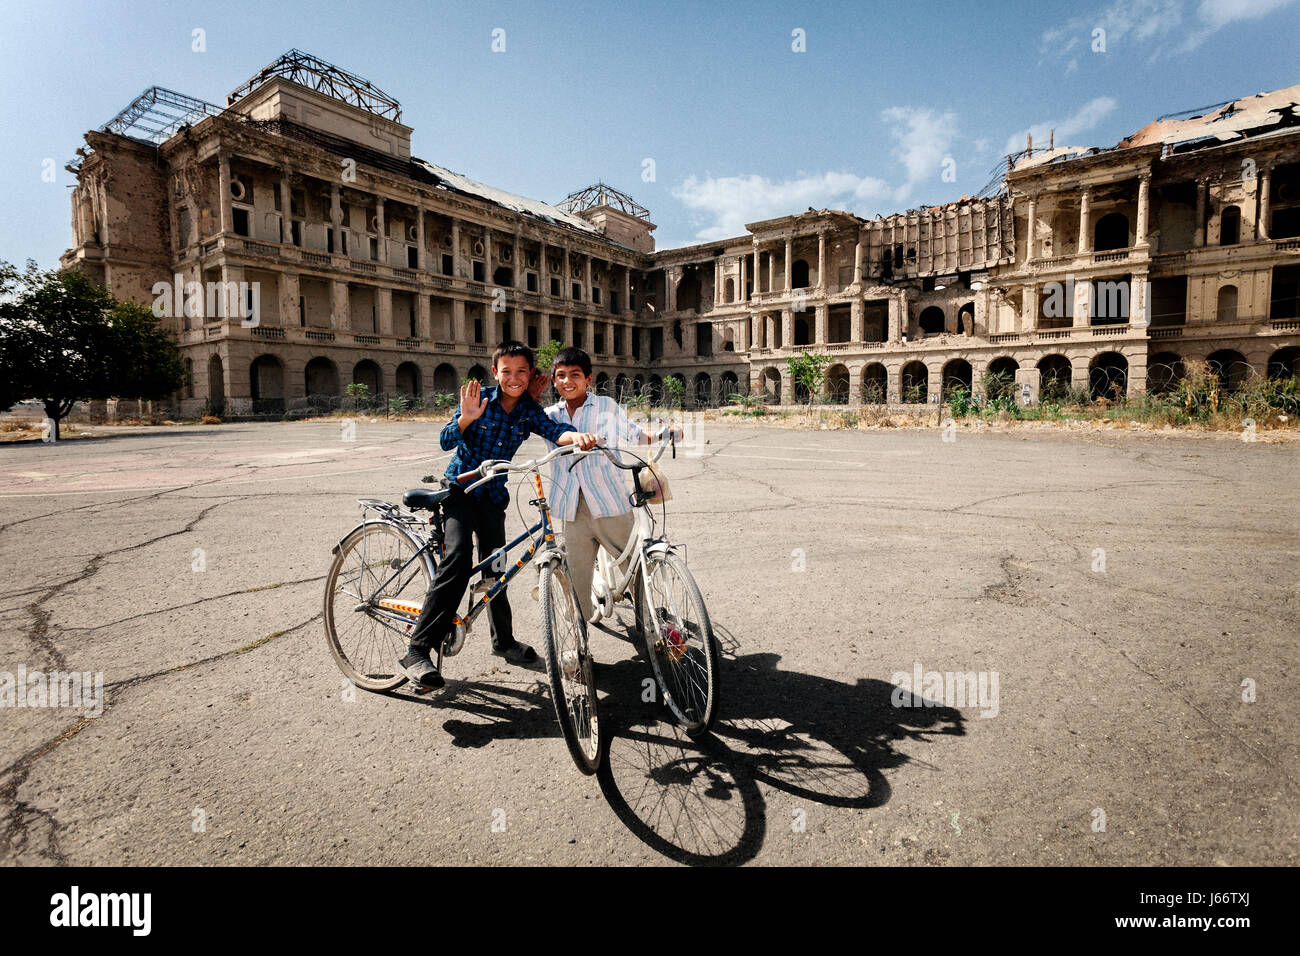 Boys ride their bikes around Darul Aman Royal Palace, Kabul, Afghanistan - Stock Image